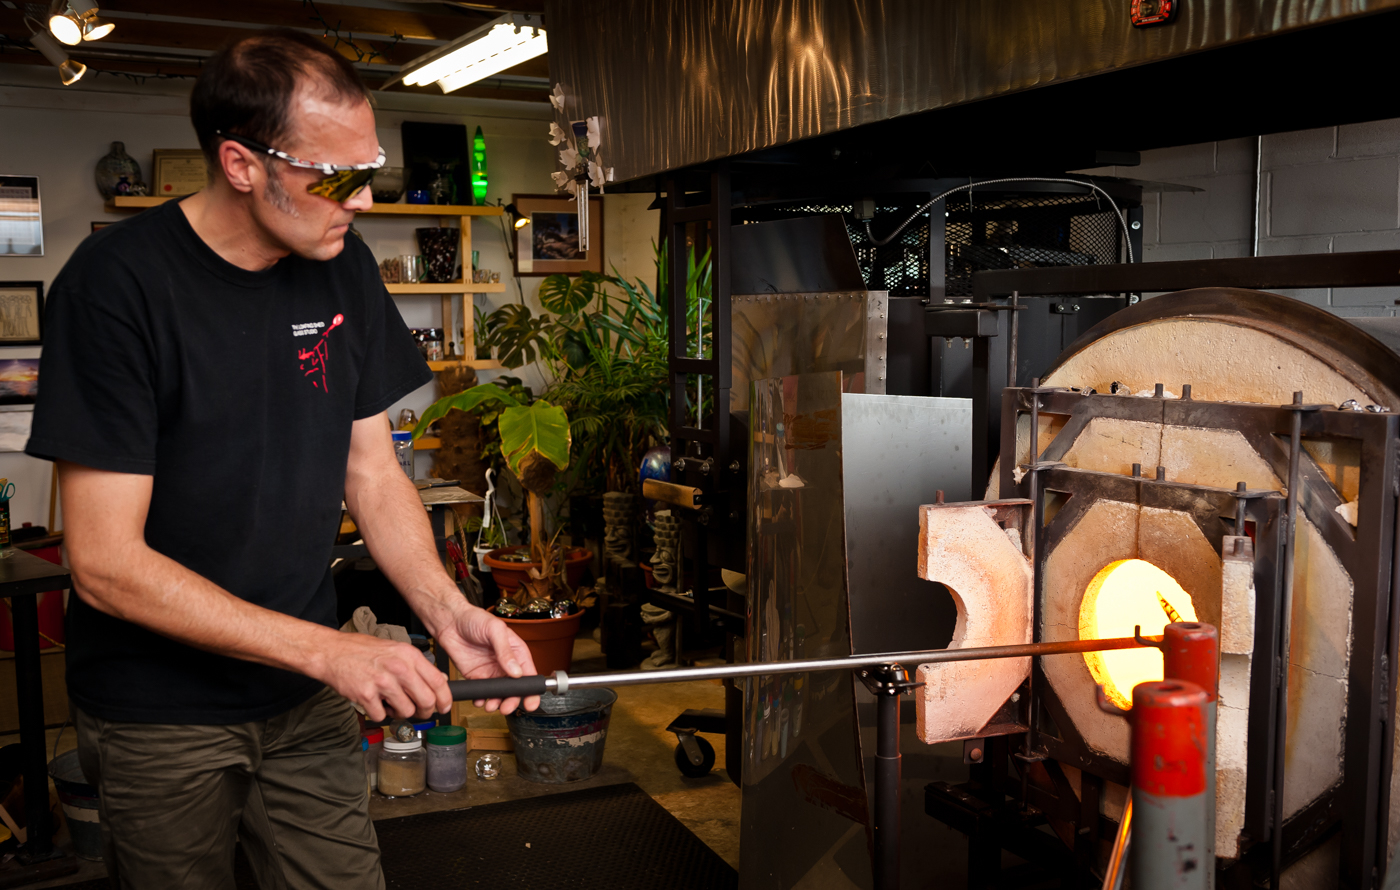 Apprentice glass blower at the Loafing Shed Glass Studio